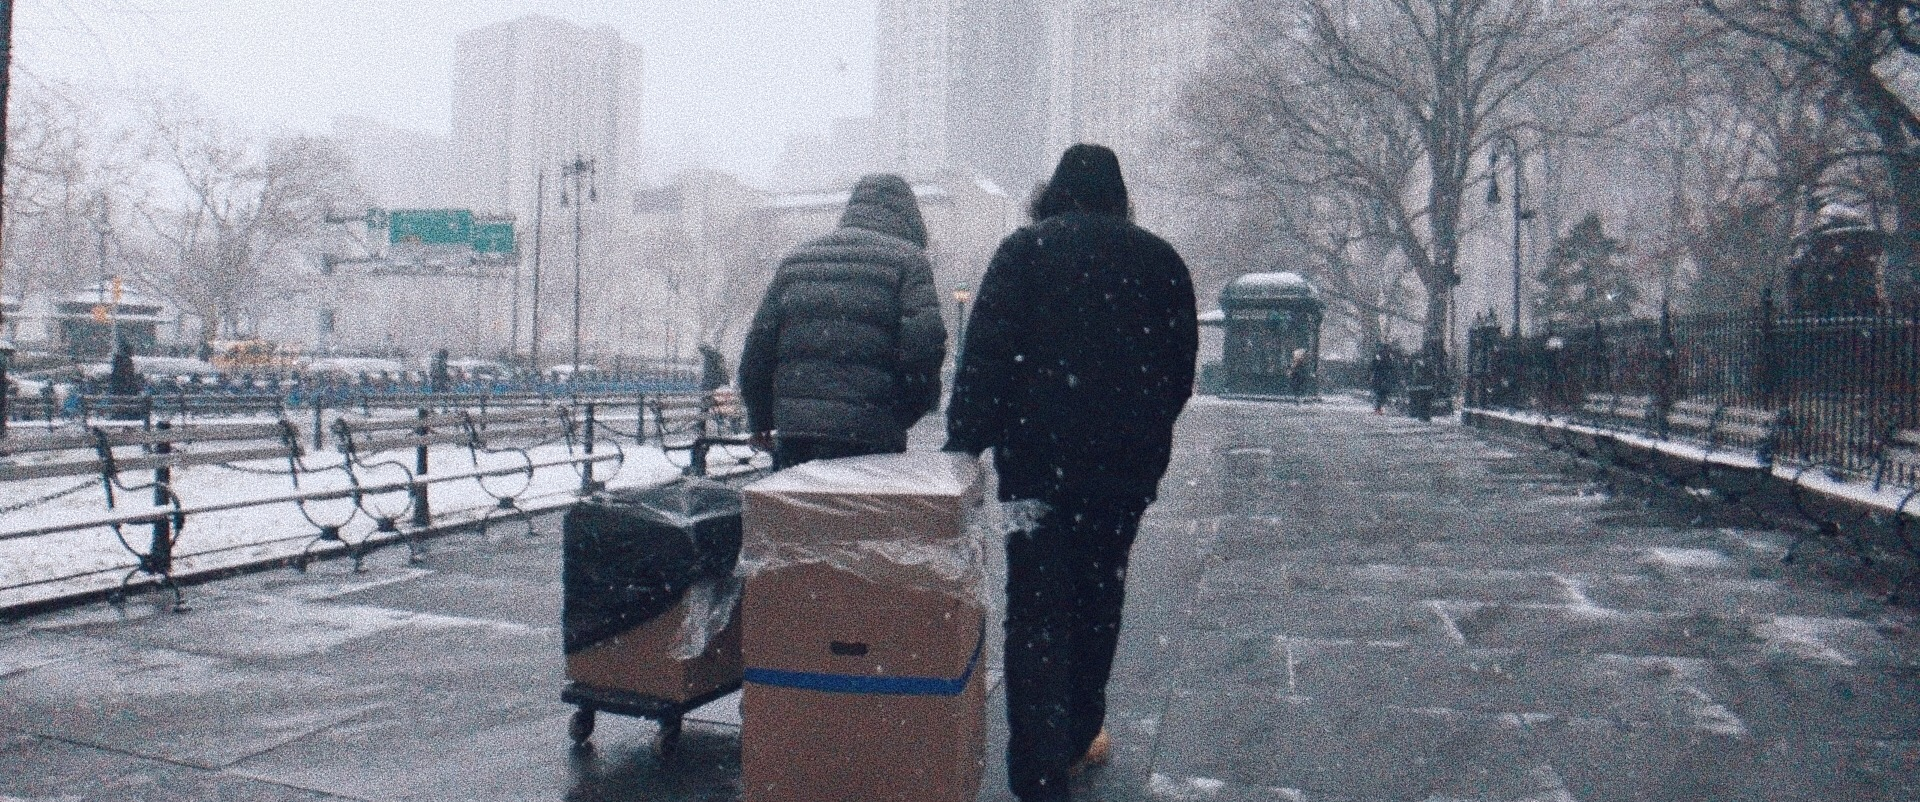 Two people pulling package carts in snowy Manhattan.